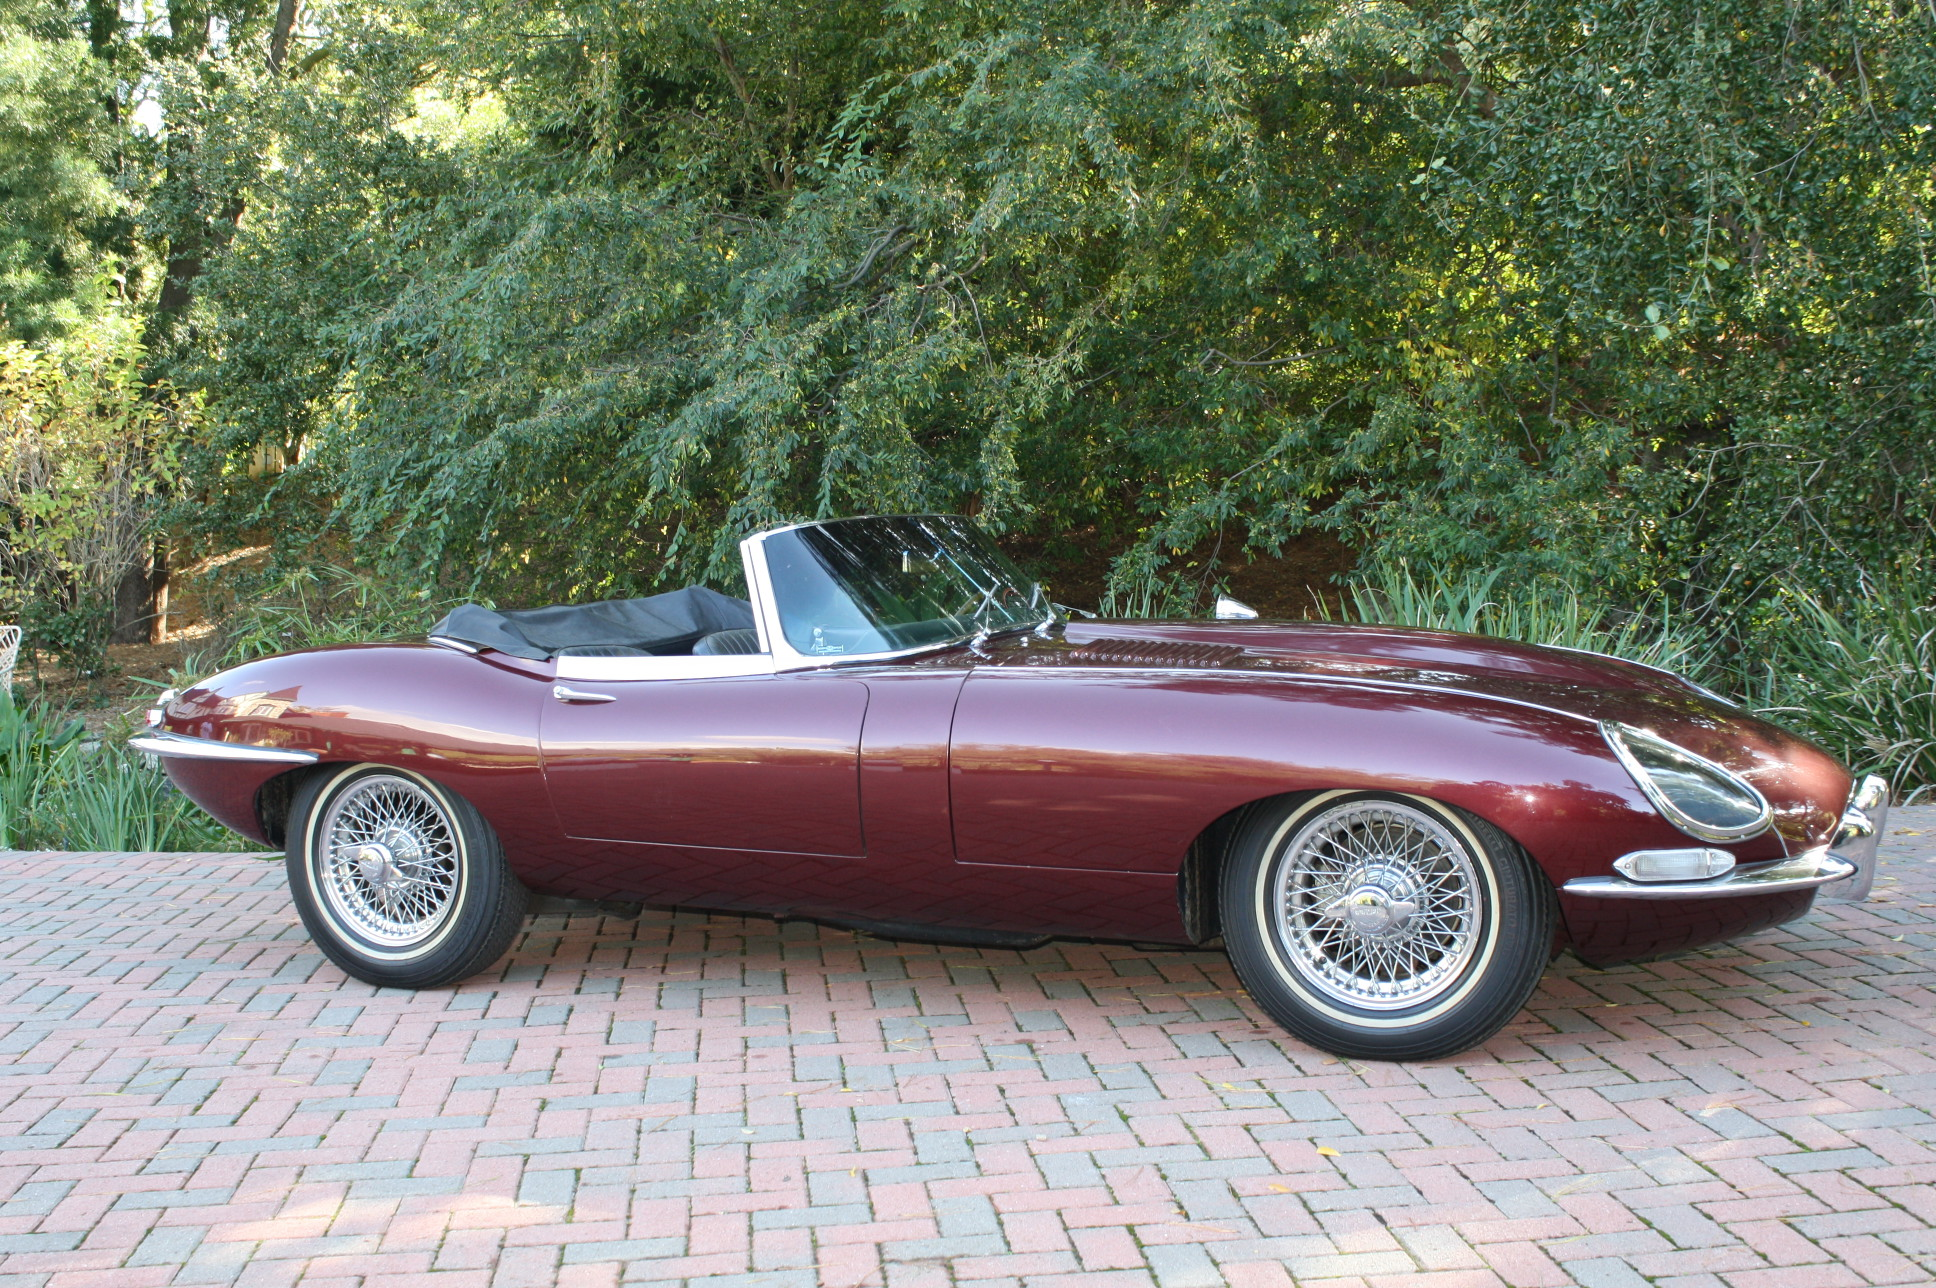 1967 Jaguar XKE Convertible - Rocks and Roadsters